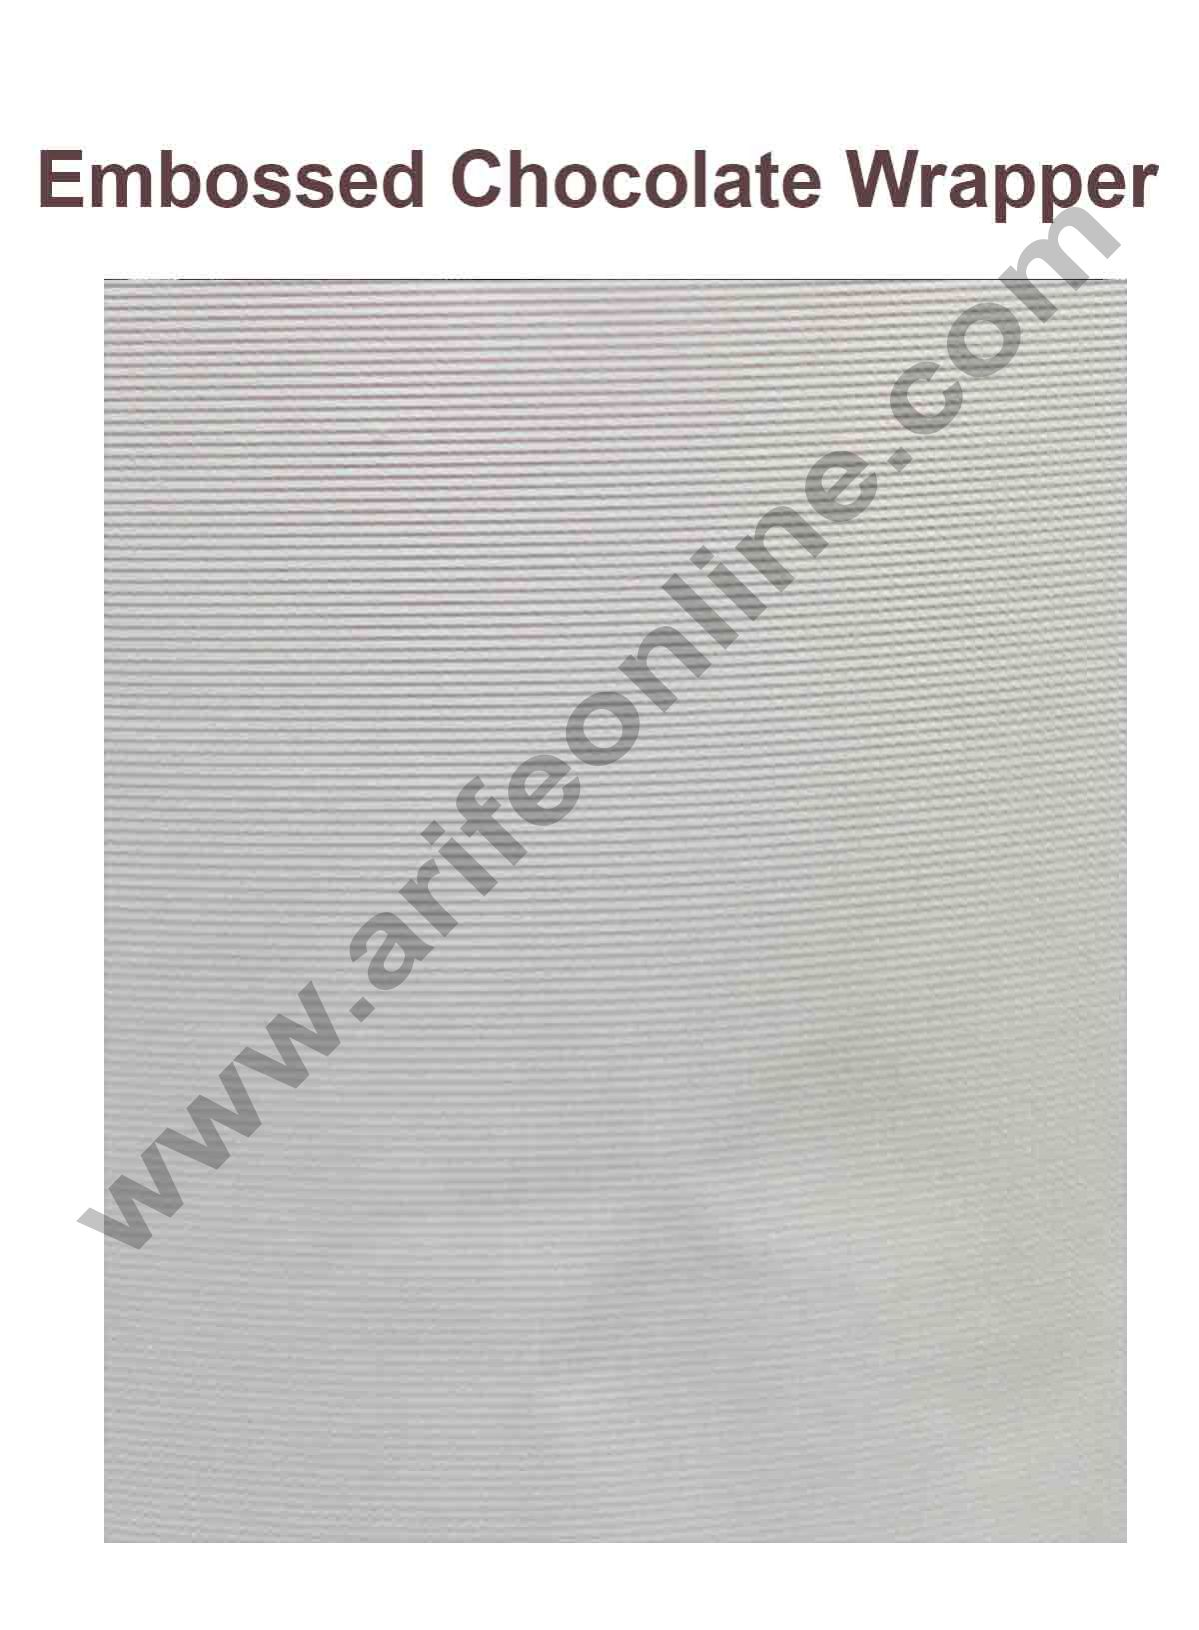 Cake Decor Chocolate Wrappering Foil, Embossed Chocolate Wrapper, 200 Sheets - 10in x 7in -White